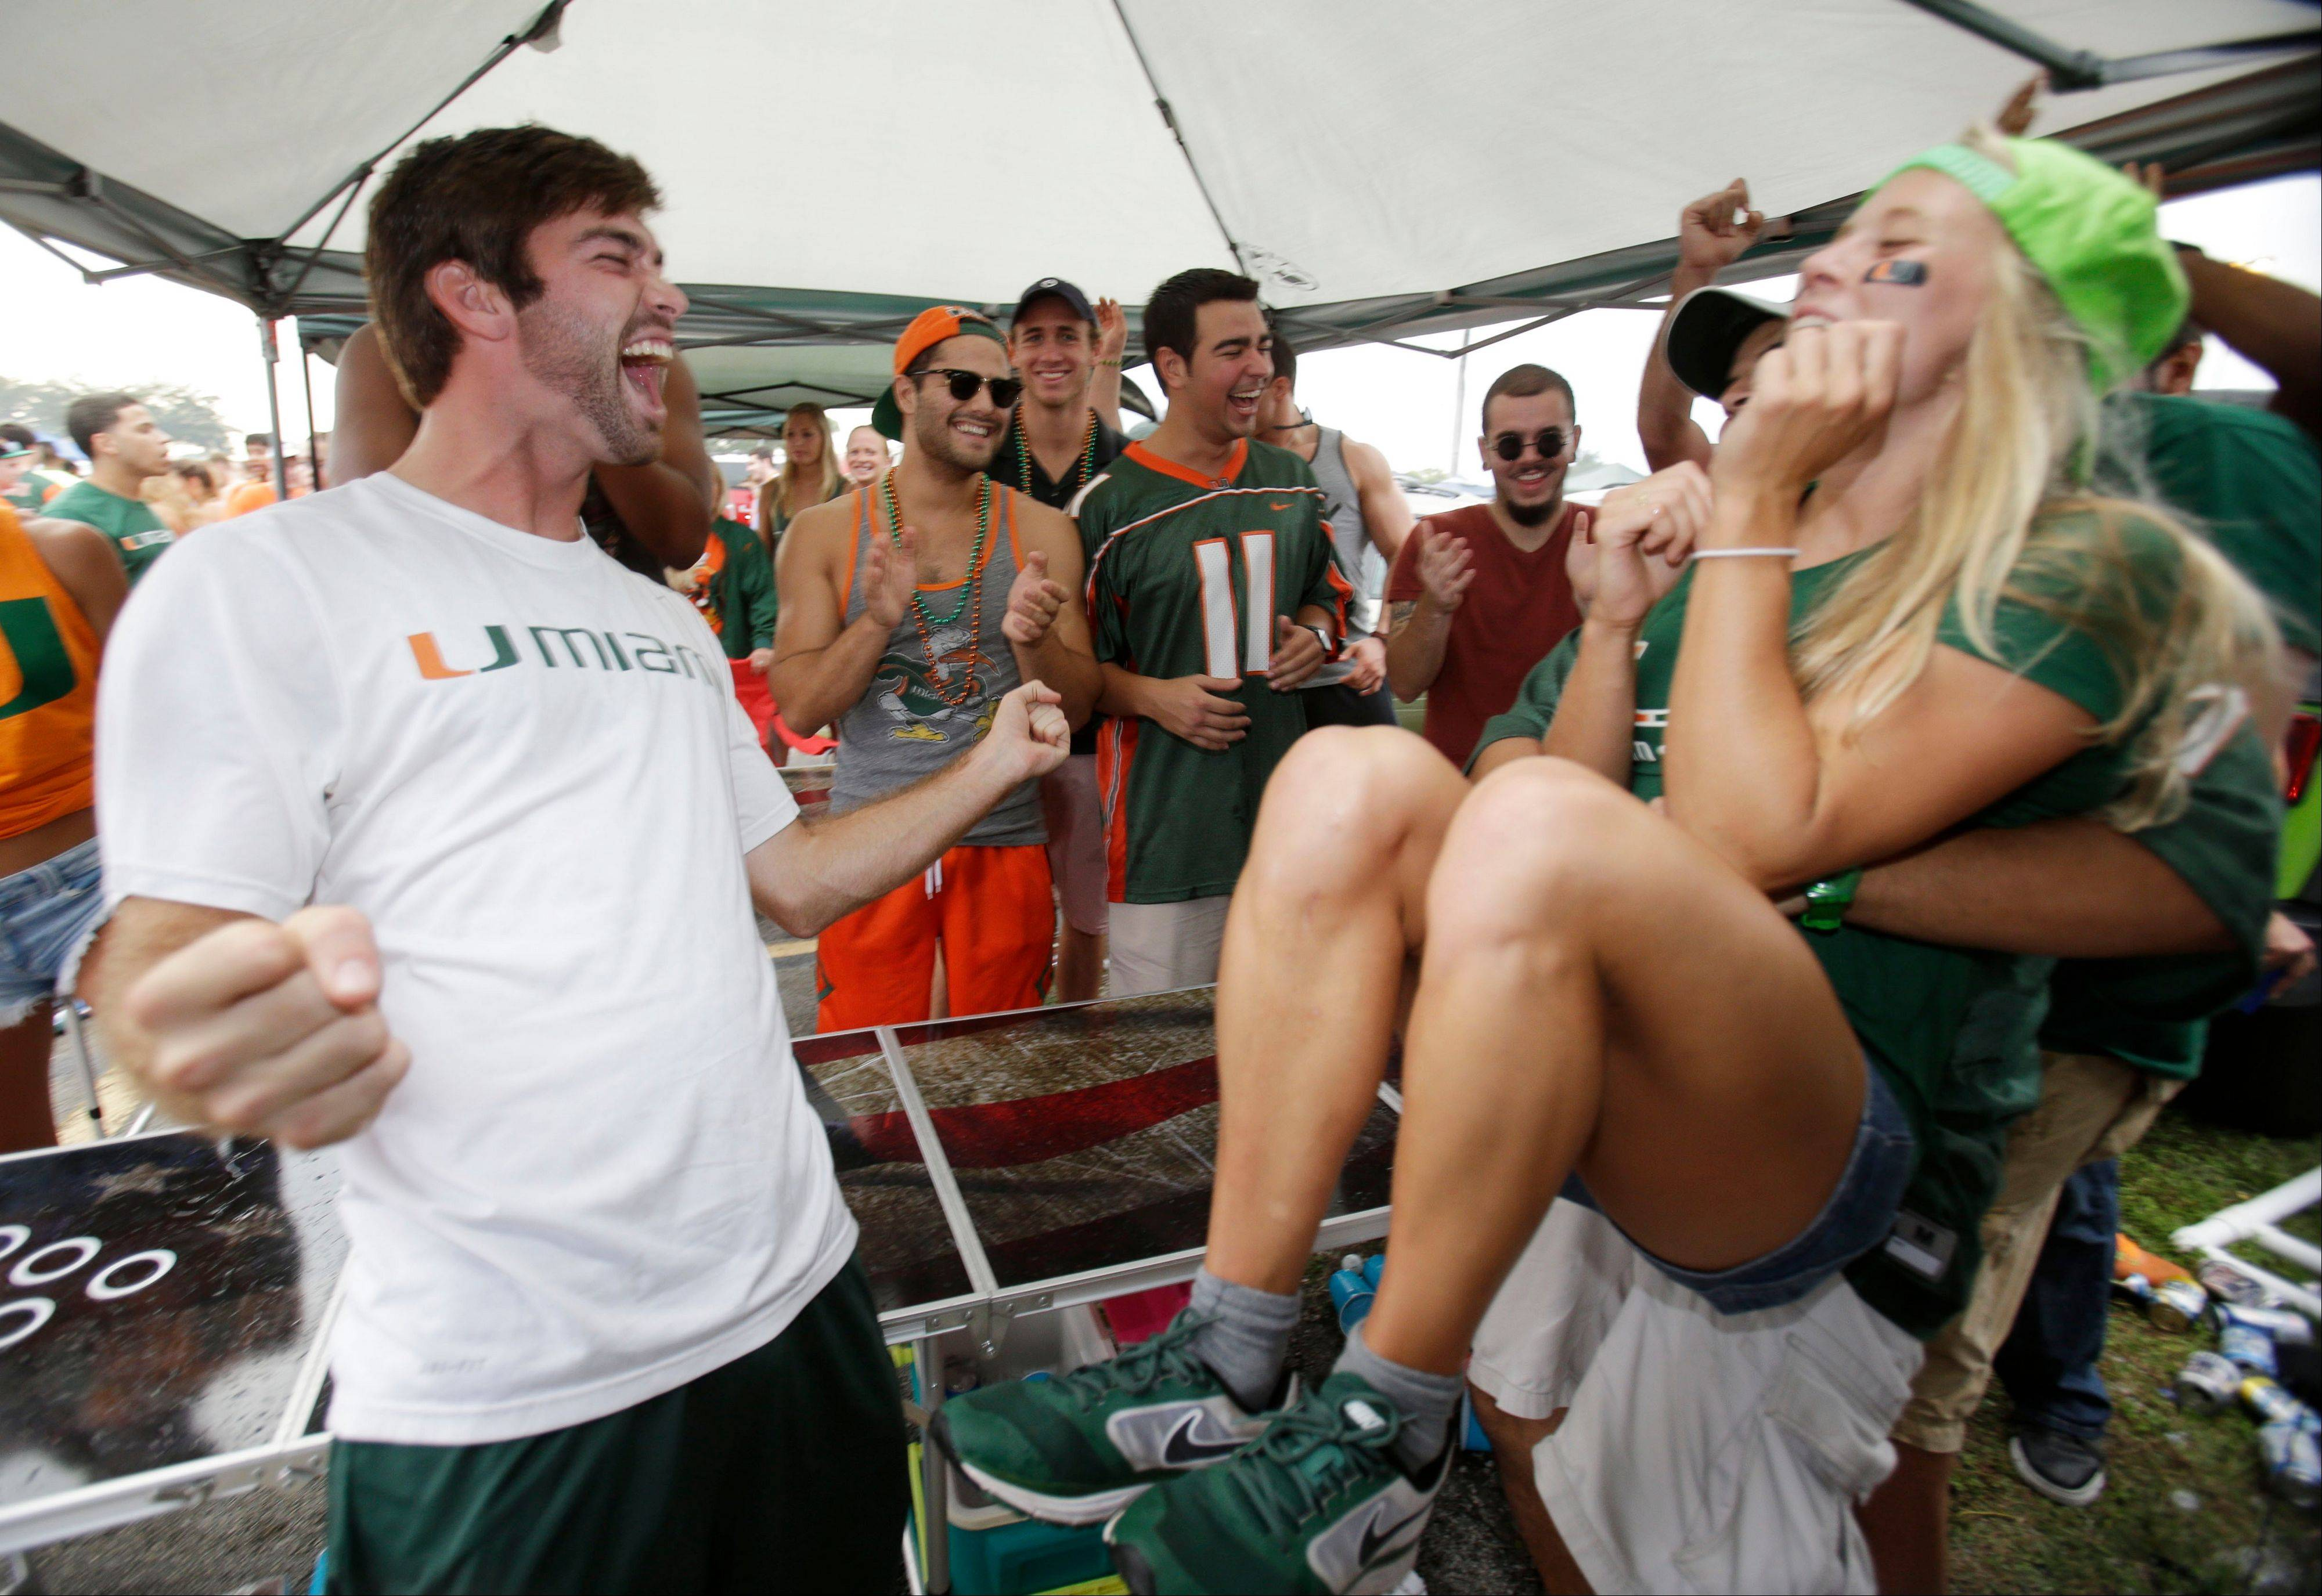 Jack Murphy, left, 20, celebrates after wining a game of pong while tailgating before the start of an NCAA college football game between Miami and Virginia Tech, in Miami Gardens, Fla. It may be the hottest tailgate party at the University of Miami's homecoming game, but the 100-yard stretch of free pizza and party tents set up by Generation Opportunity, a national conservative organization, is also a carefully crafted strategy aimed at getting students to opt out of President Barack Obama's controversial new health law.